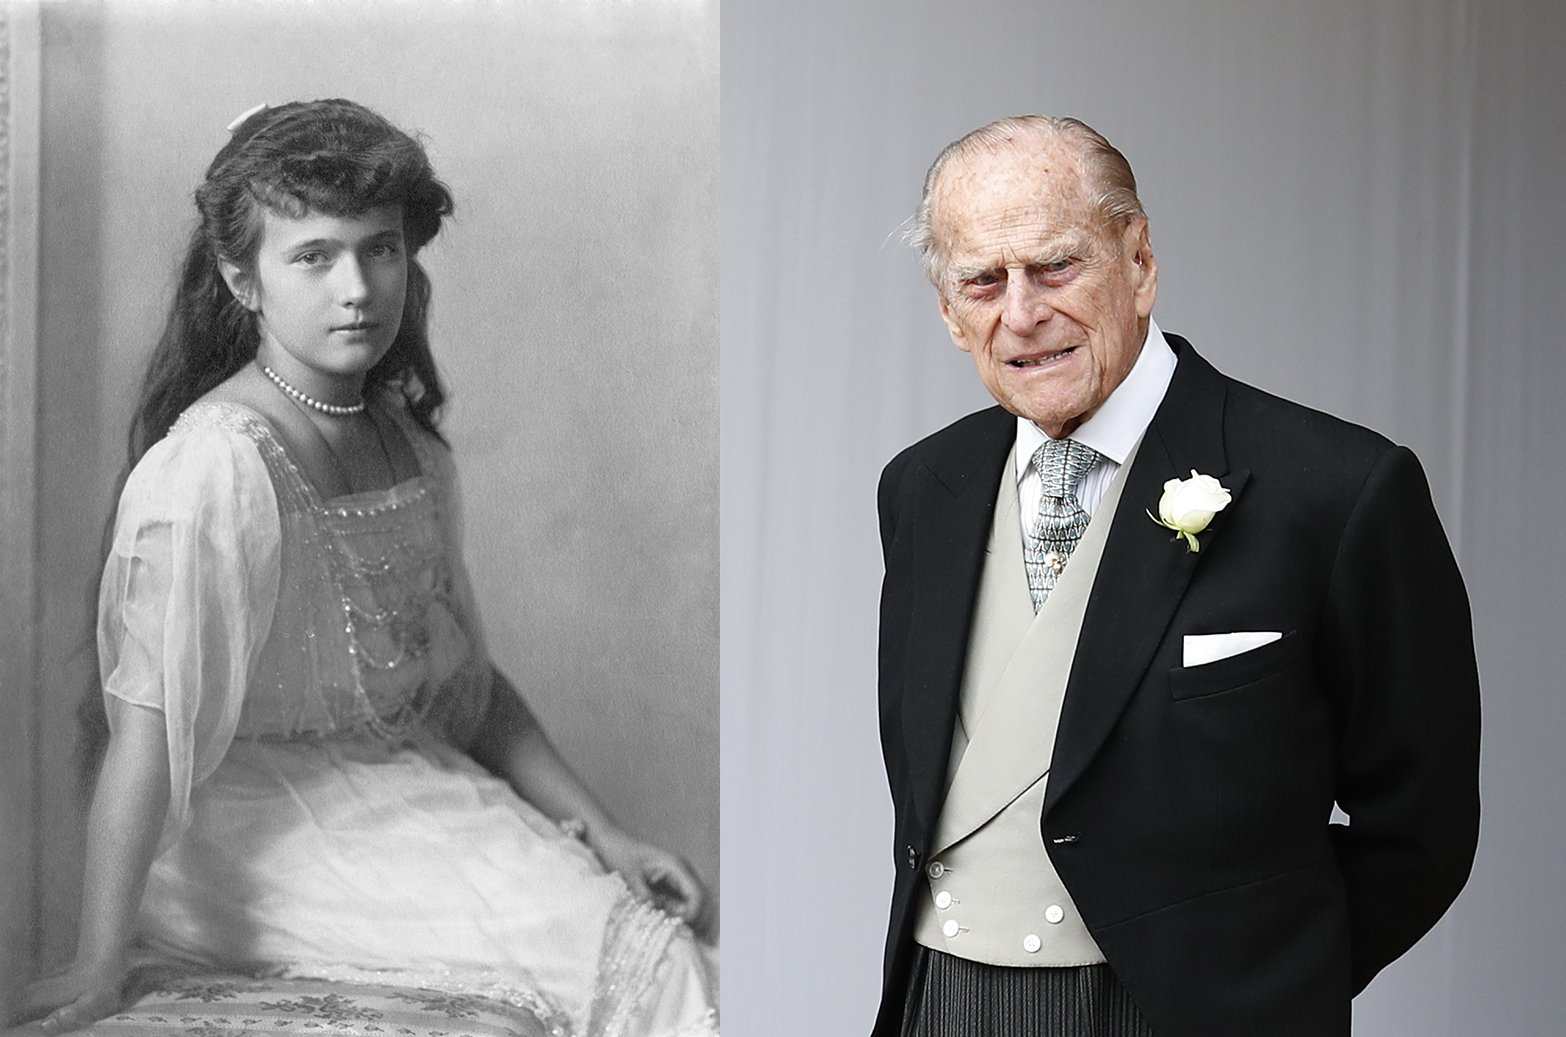 Anastasia Romanov and Prince Philip. I Image: Wikimedia Commons/ Getty Images.